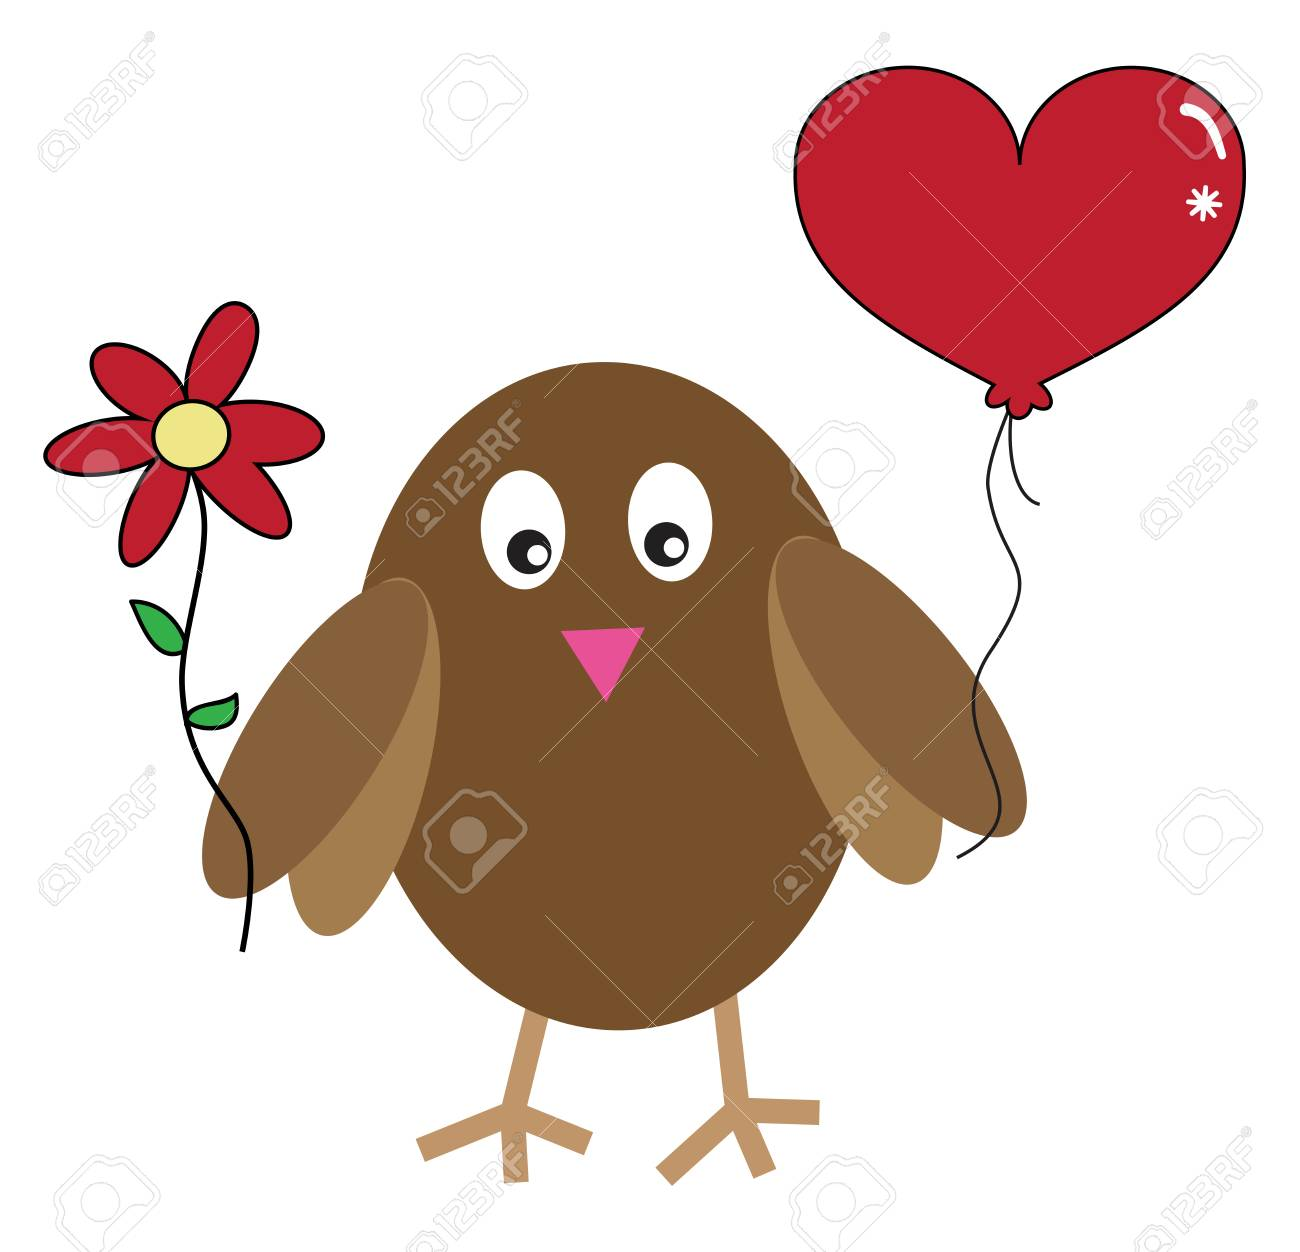 Happy Valentines Day Owl Royalty Free Cliparts Vectors And Stock